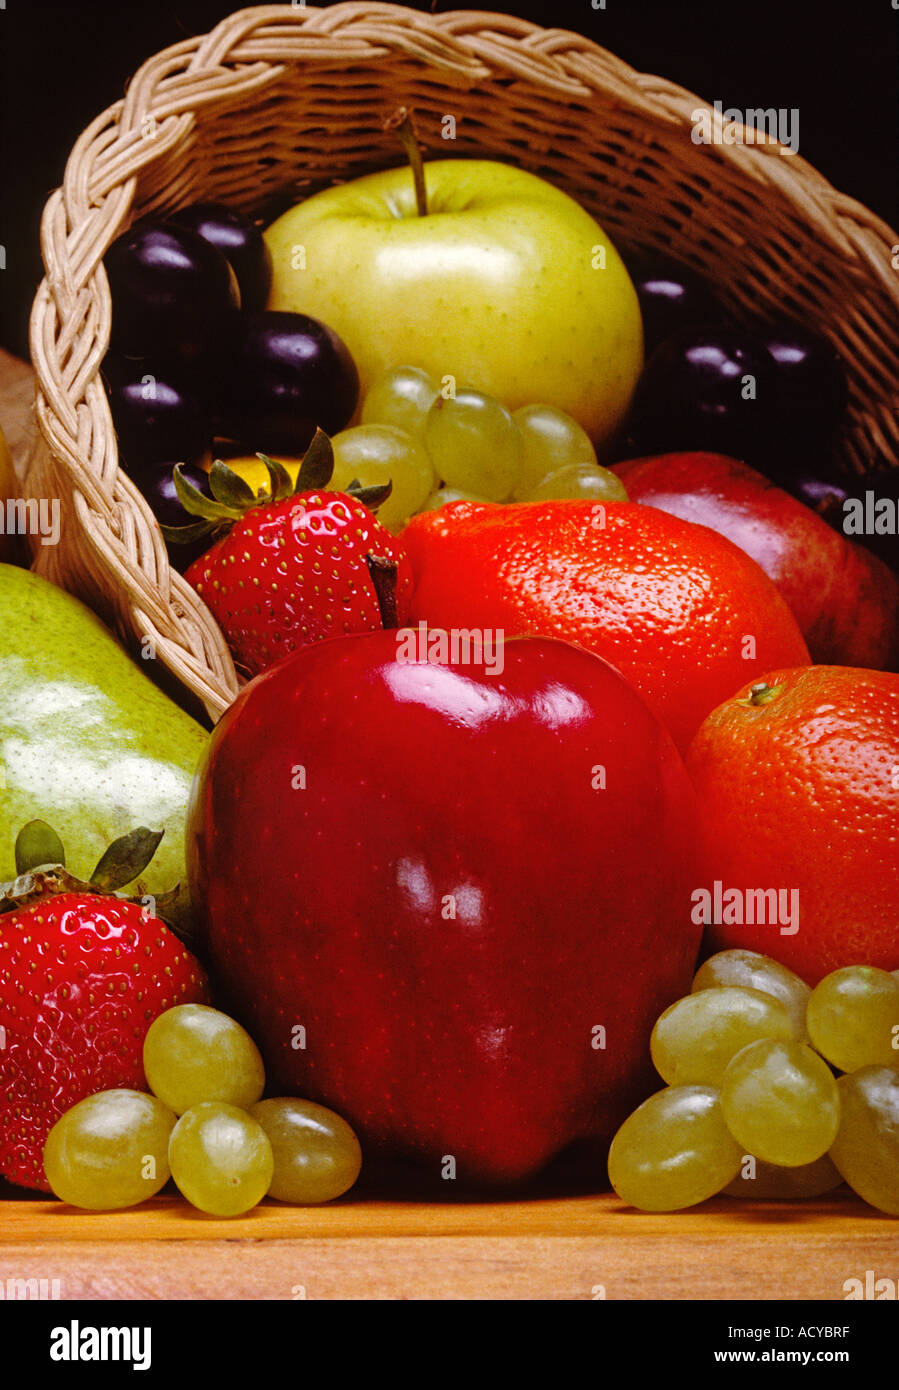 CORNUCOPIA of fruit with apples tangelos grapes strawberries and pear - Stock Image